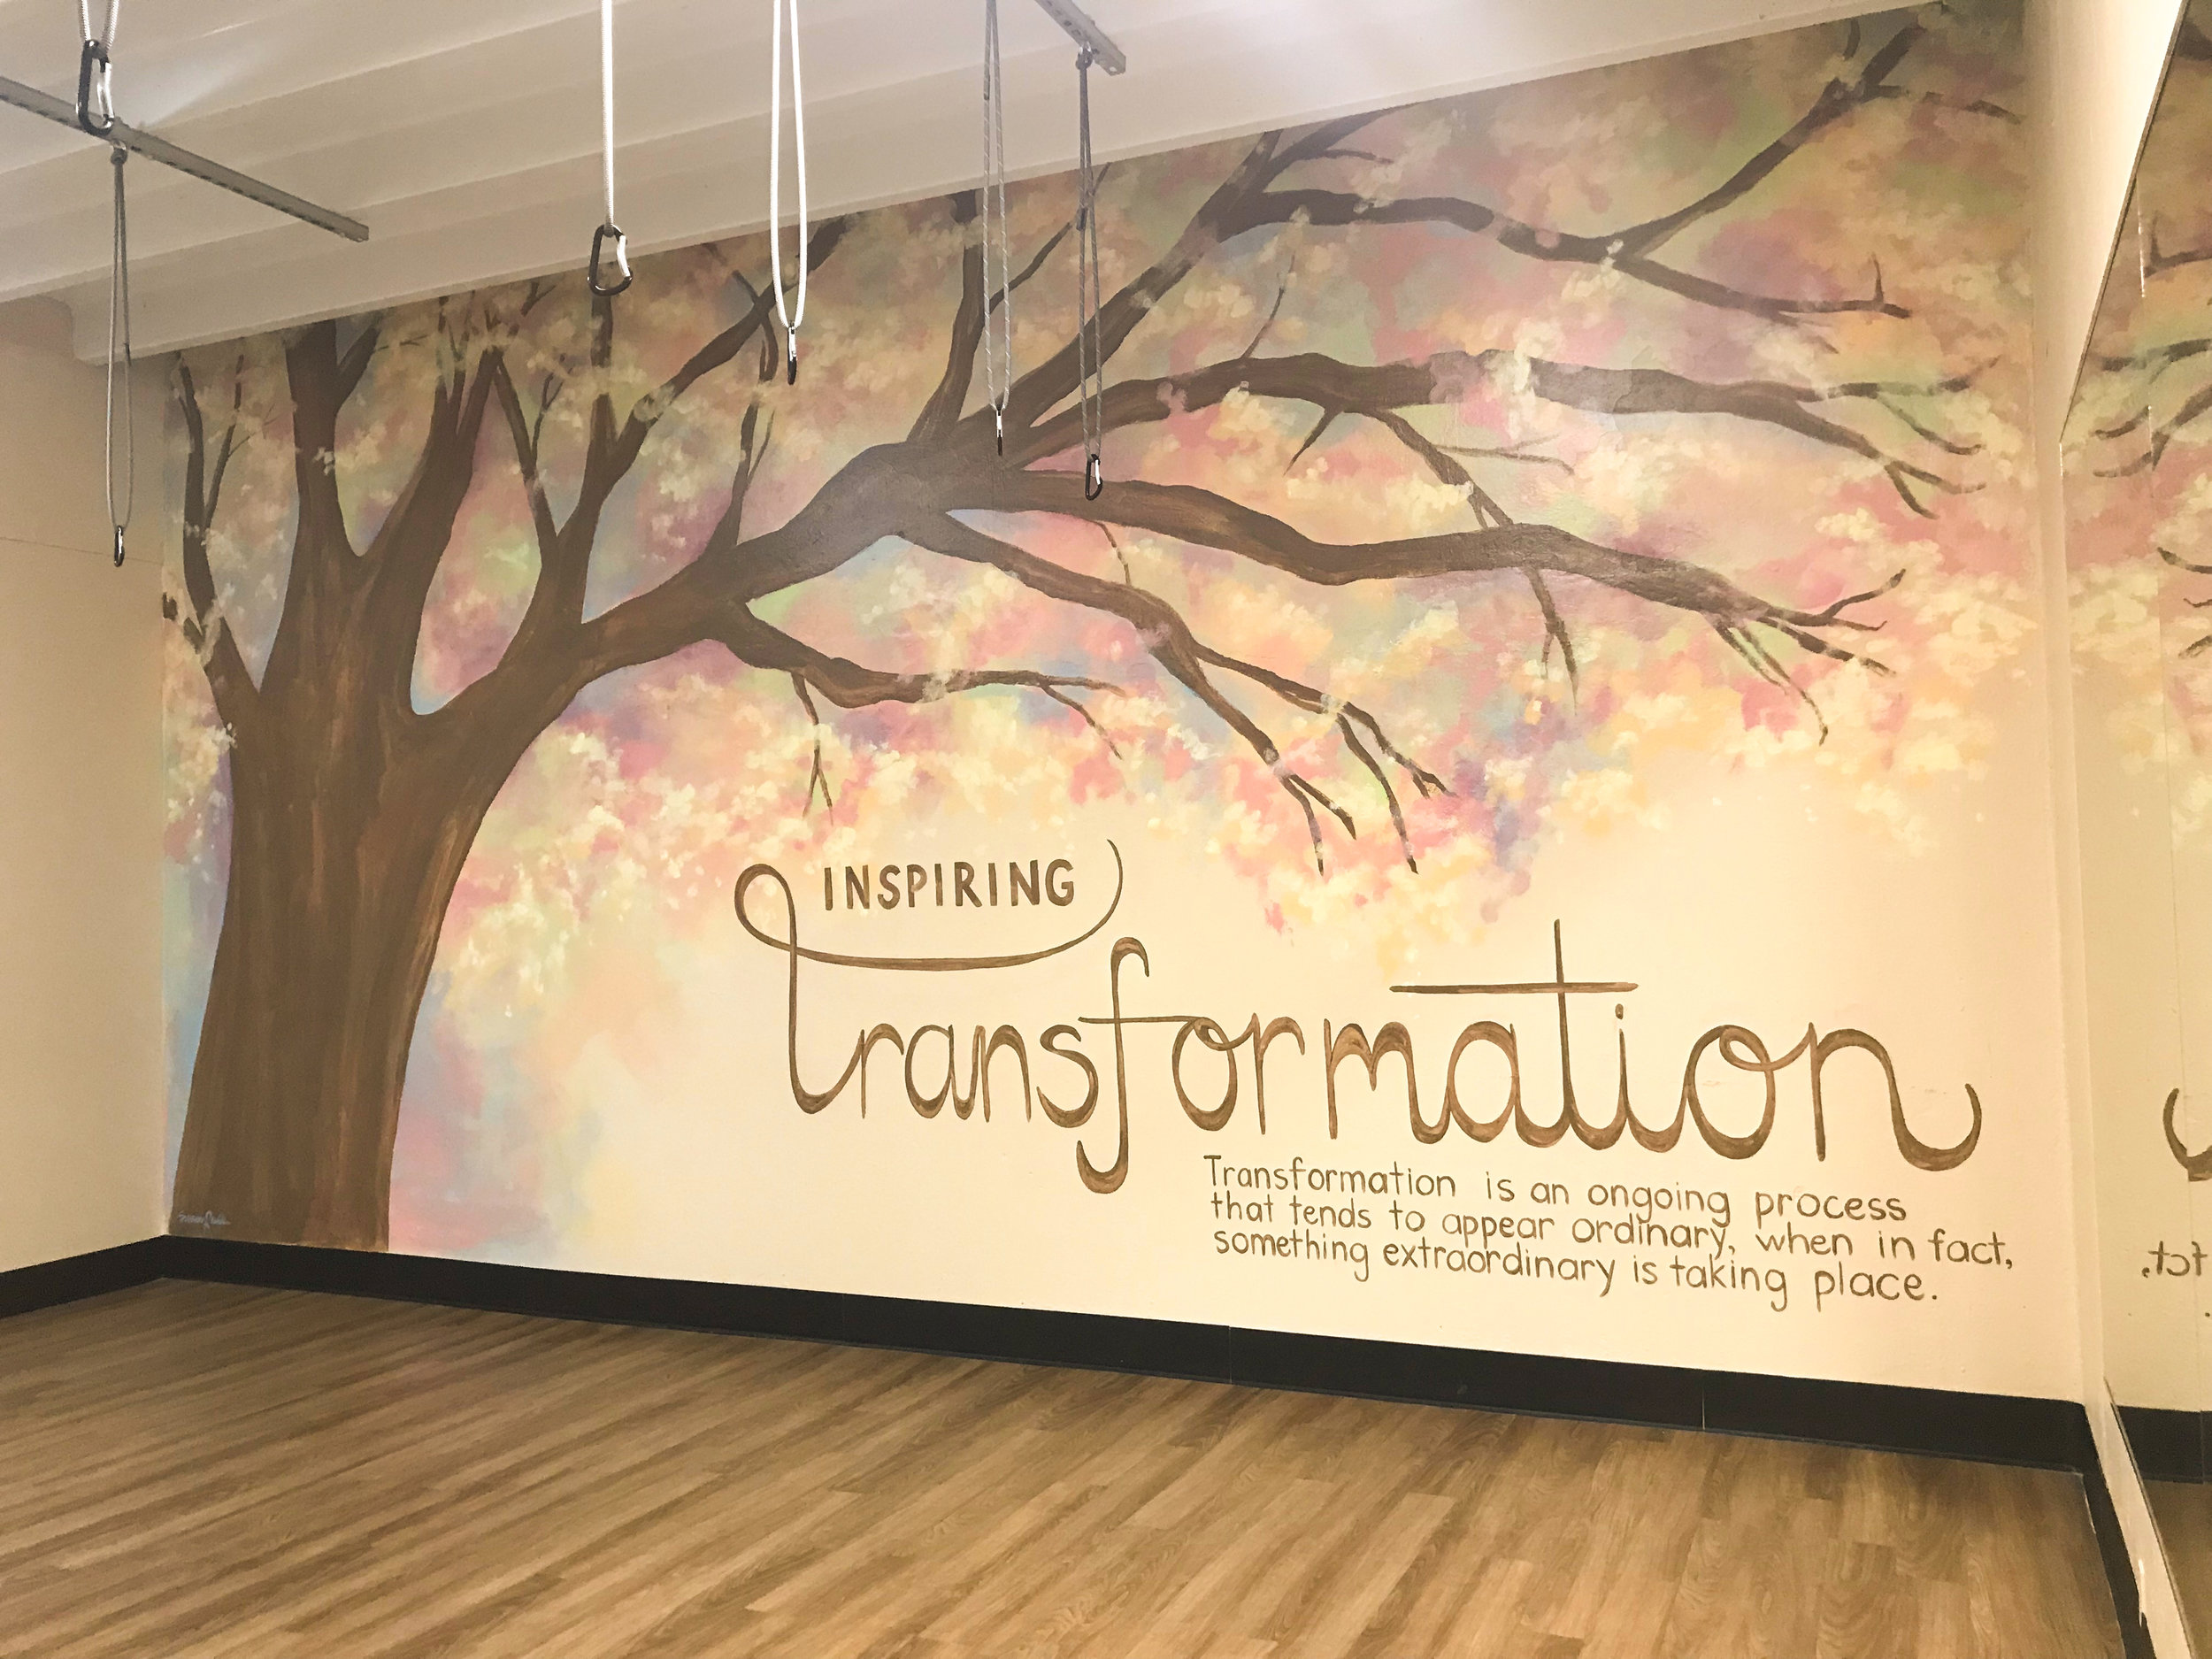 Downtown YMCA Wellness Room mural, Montgomery, AL. 20' x 11' latex on stucco. 2019.